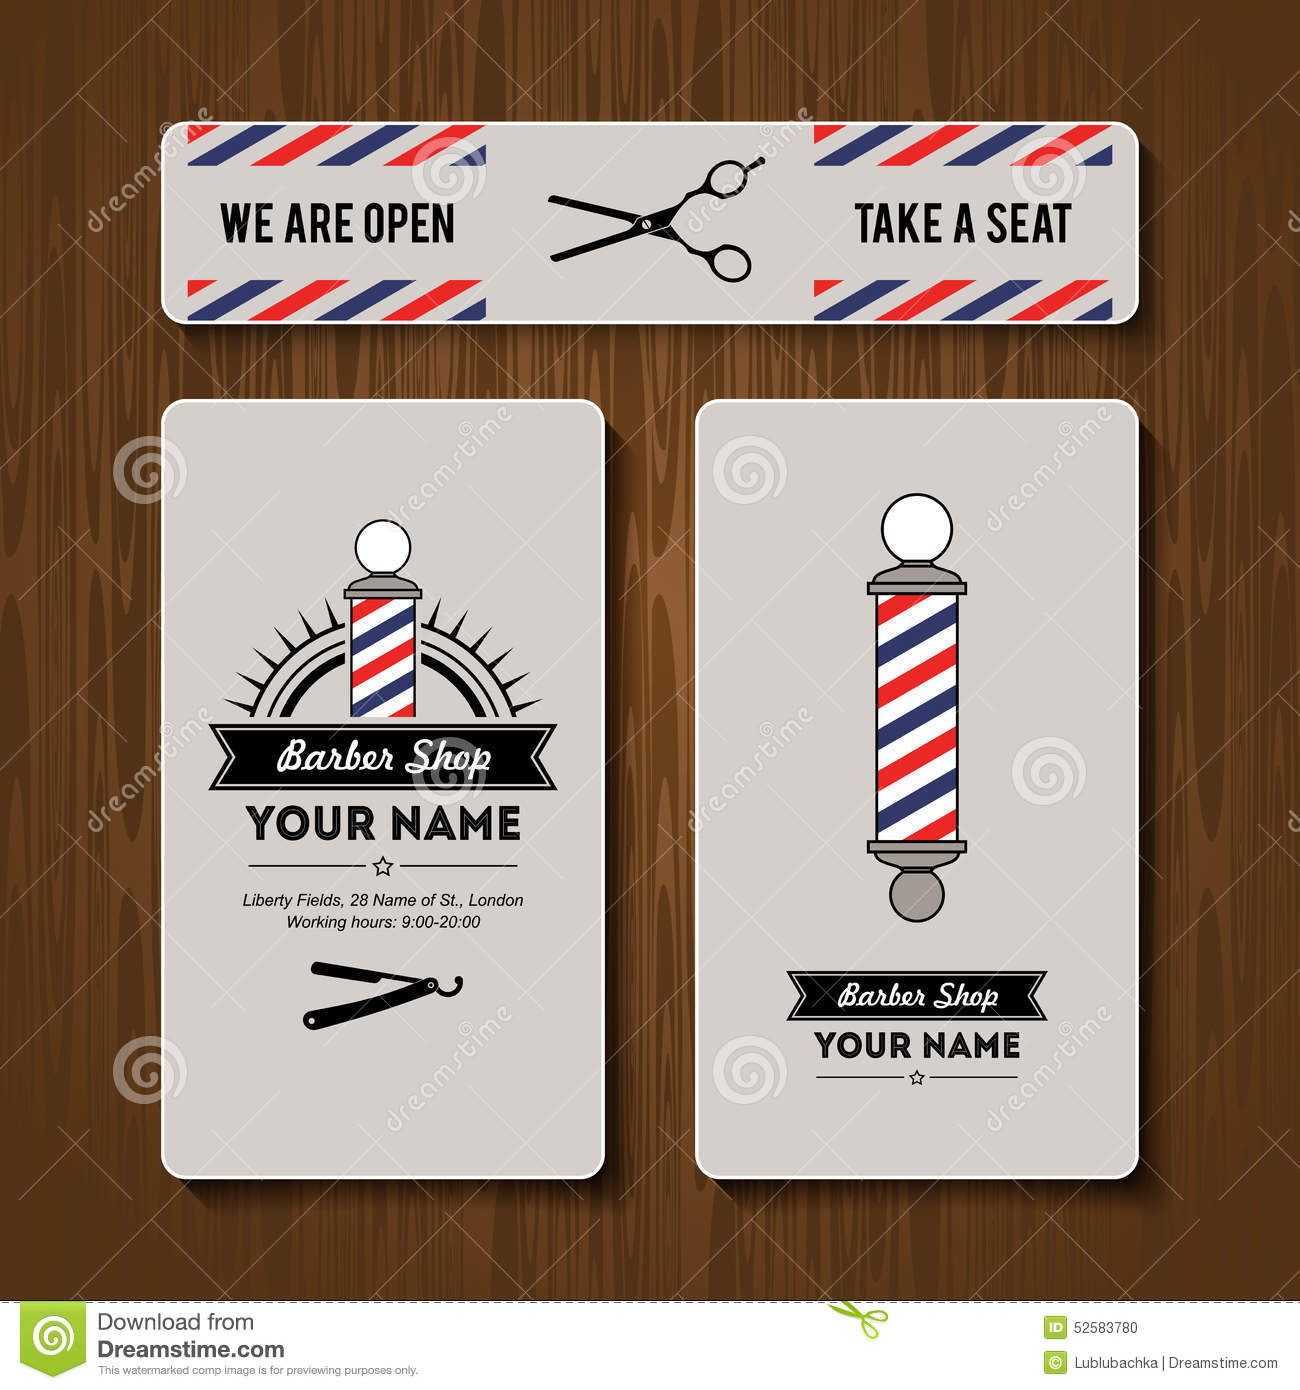 hair salon barber shop business card design template set stock illustration image 52583780. Black Bedroom Furniture Sets. Home Design Ideas